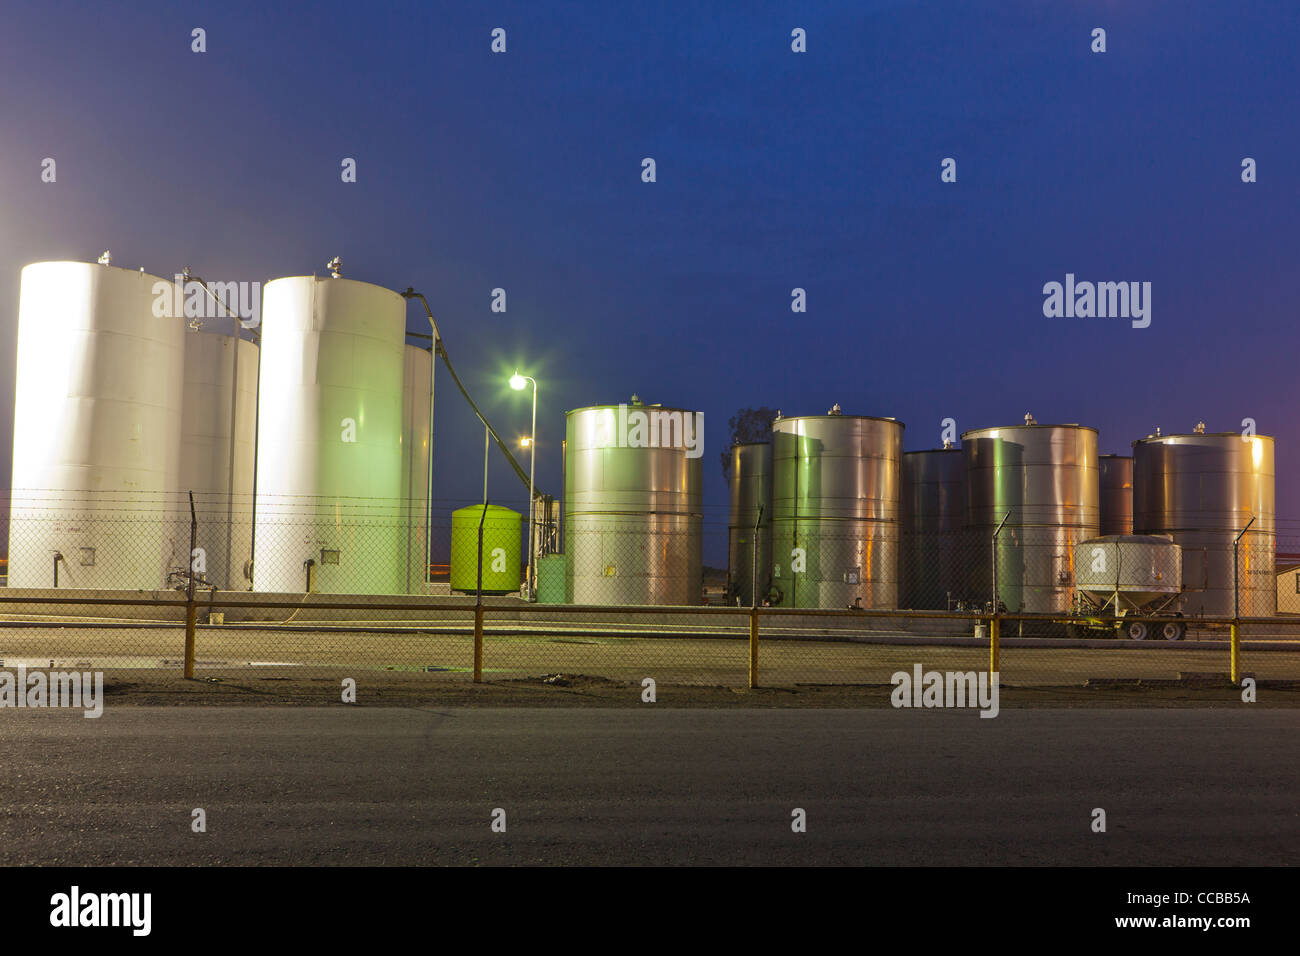 Industrial size stainless steel chemical tanks - Stock Image